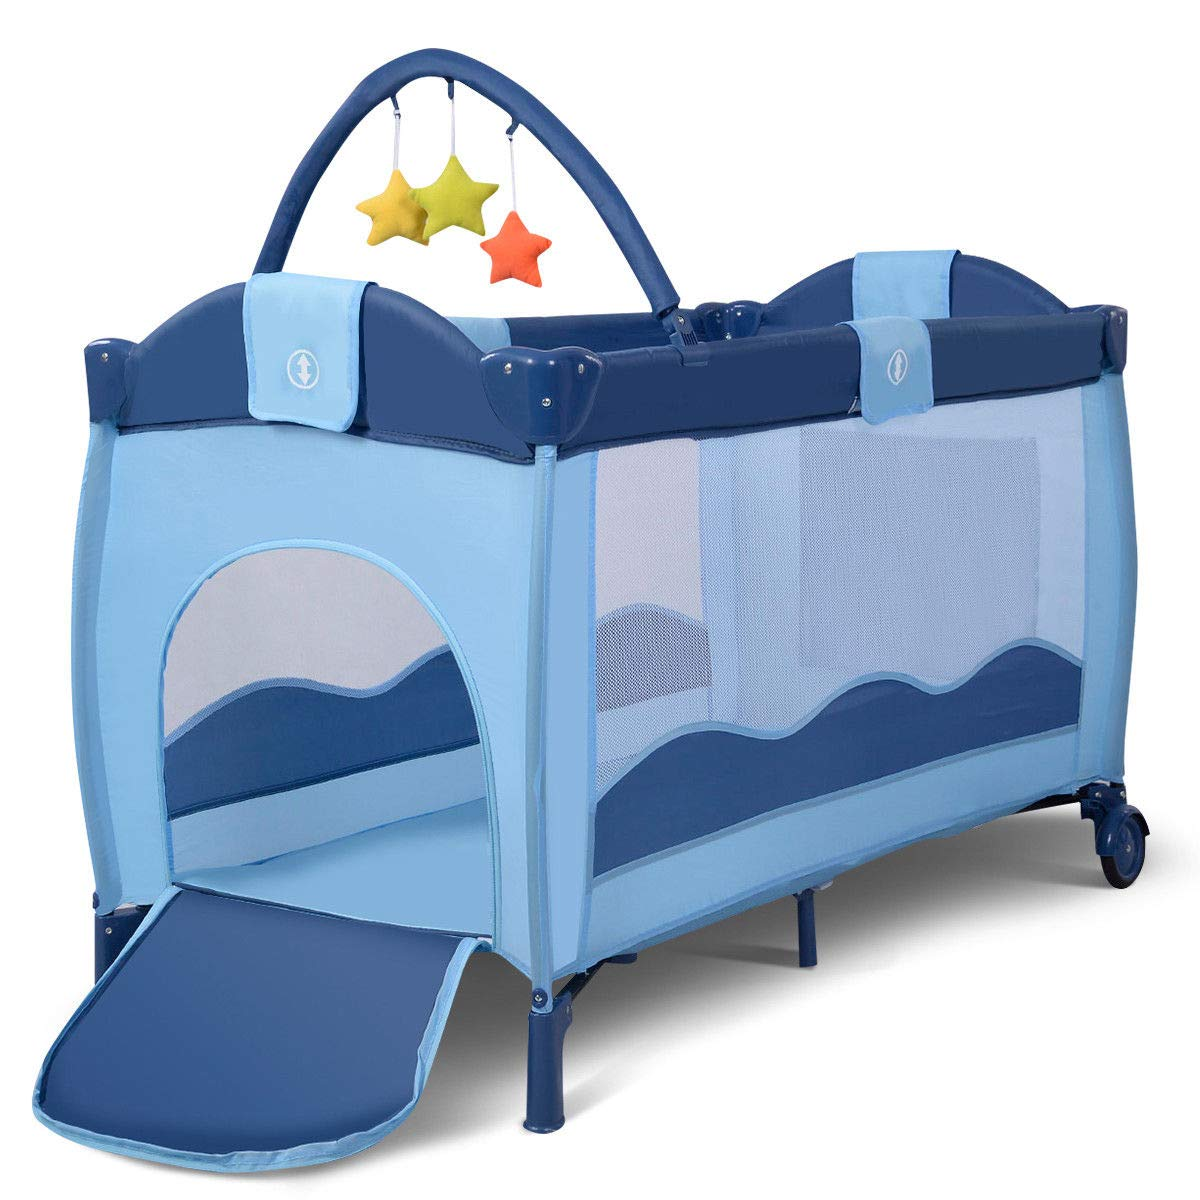 Toddler Baby Crib Playard Pack Playpen Bassinet Travel Infant Bed Portable Foldable by WealthyPlaza (Image #4)